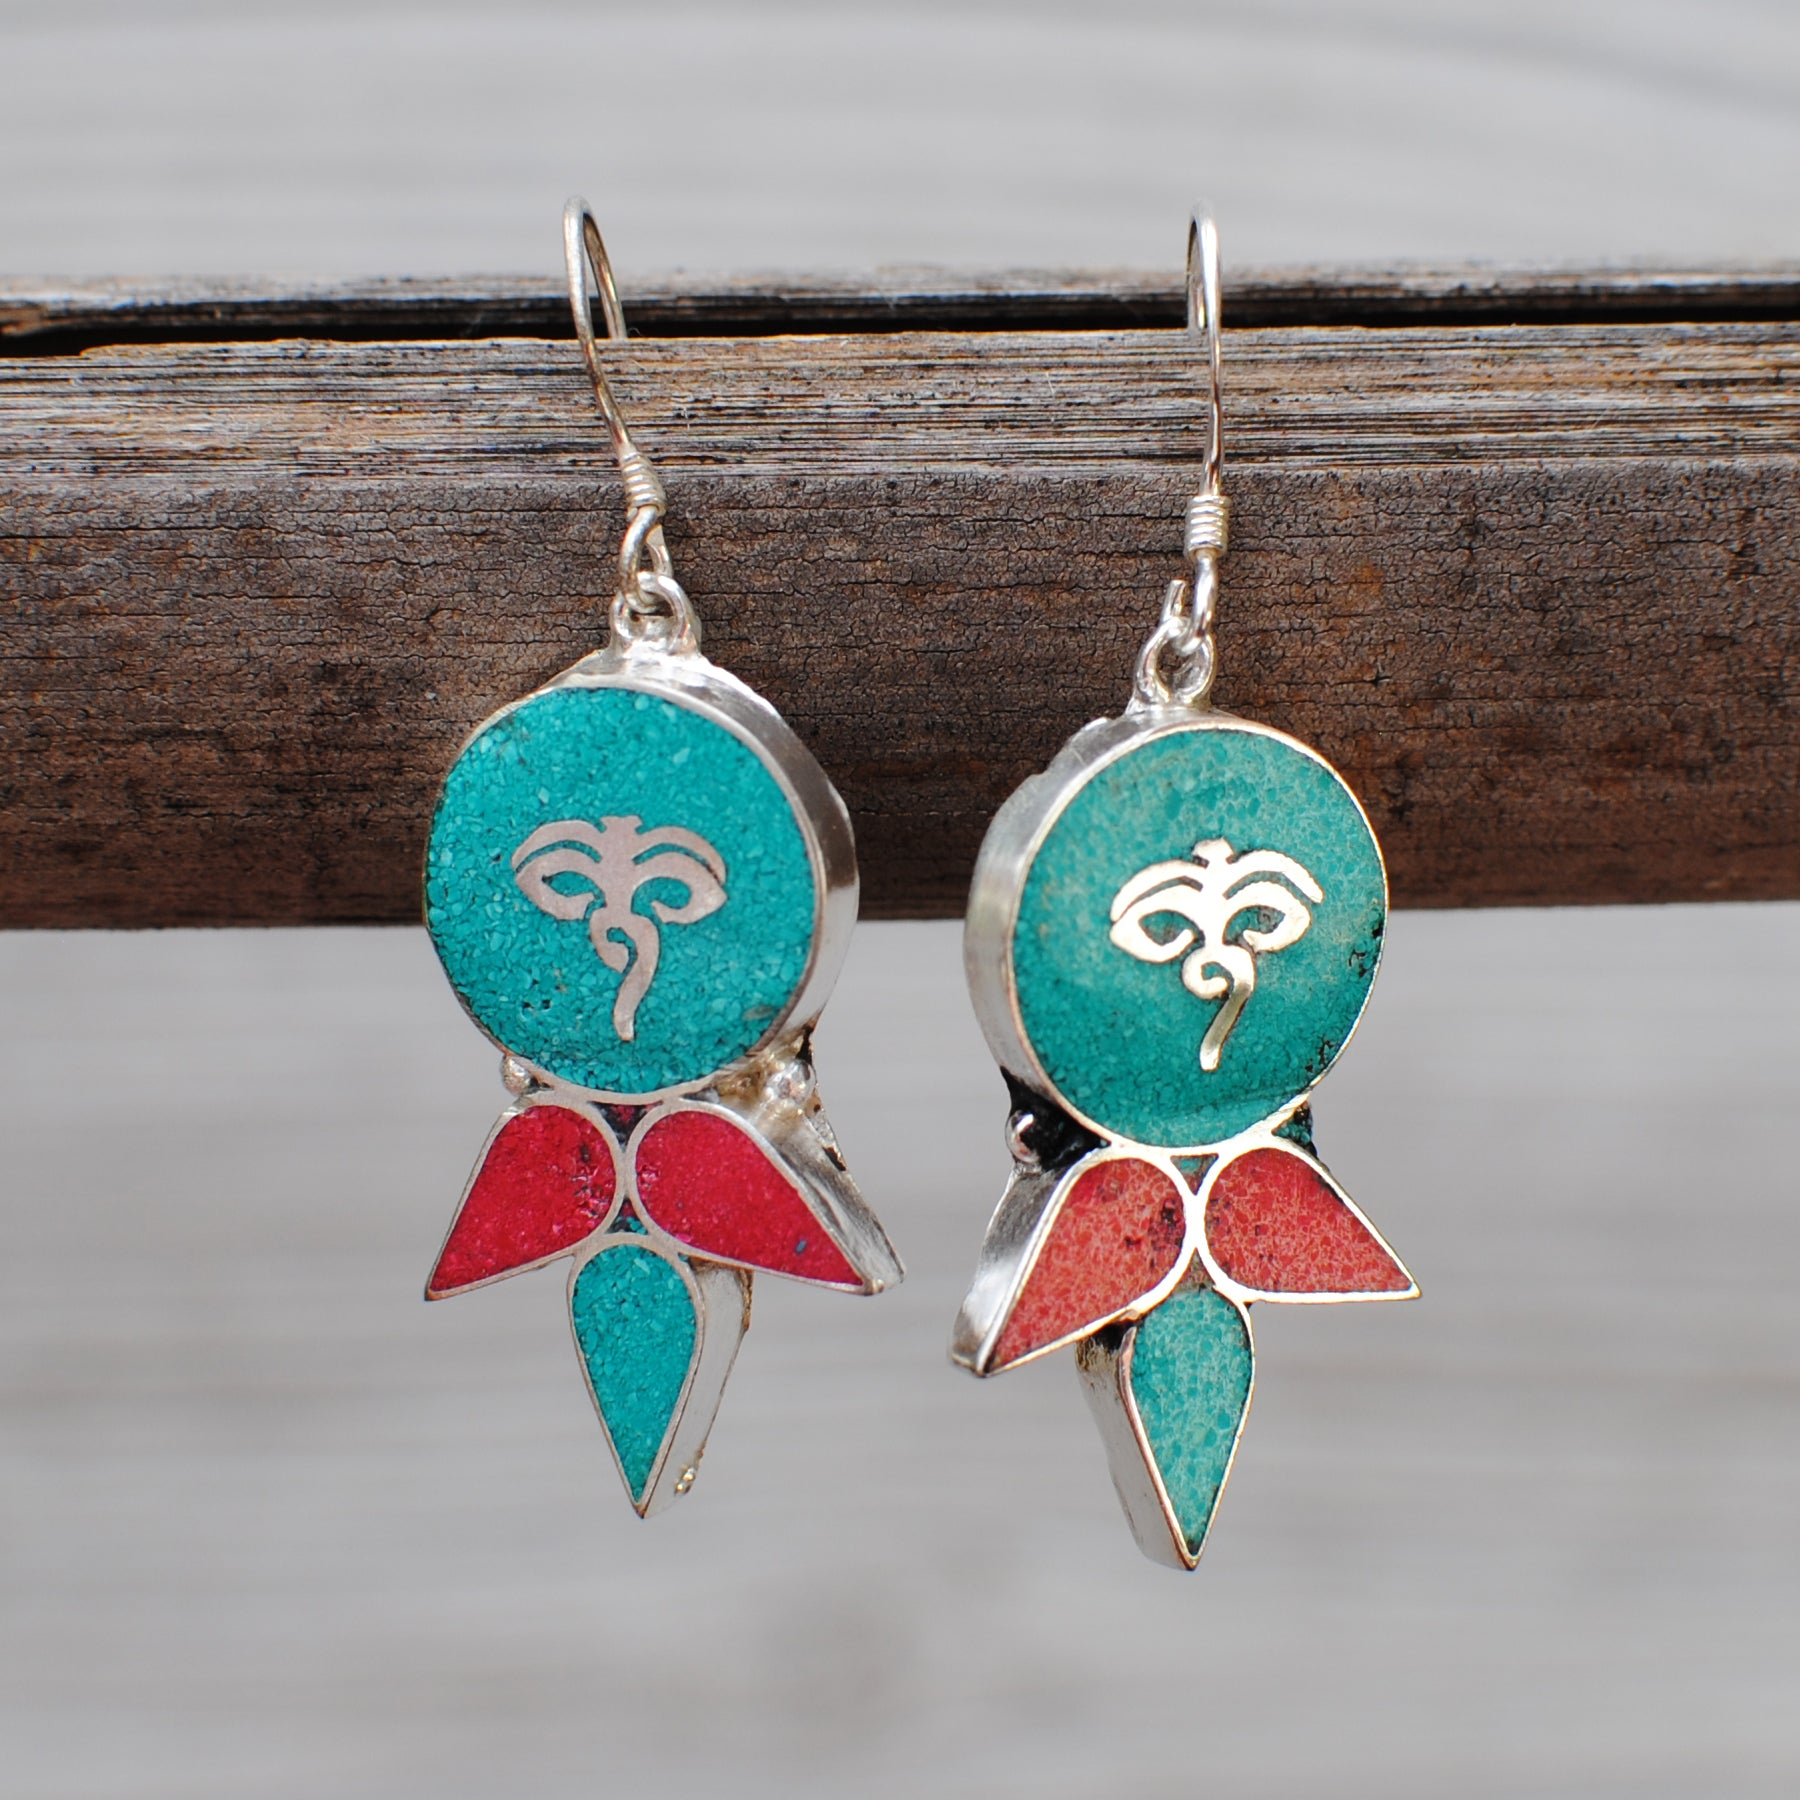 Handmade Ethnic Tibetan Silver Earrings with Turquoise & Coral -  105